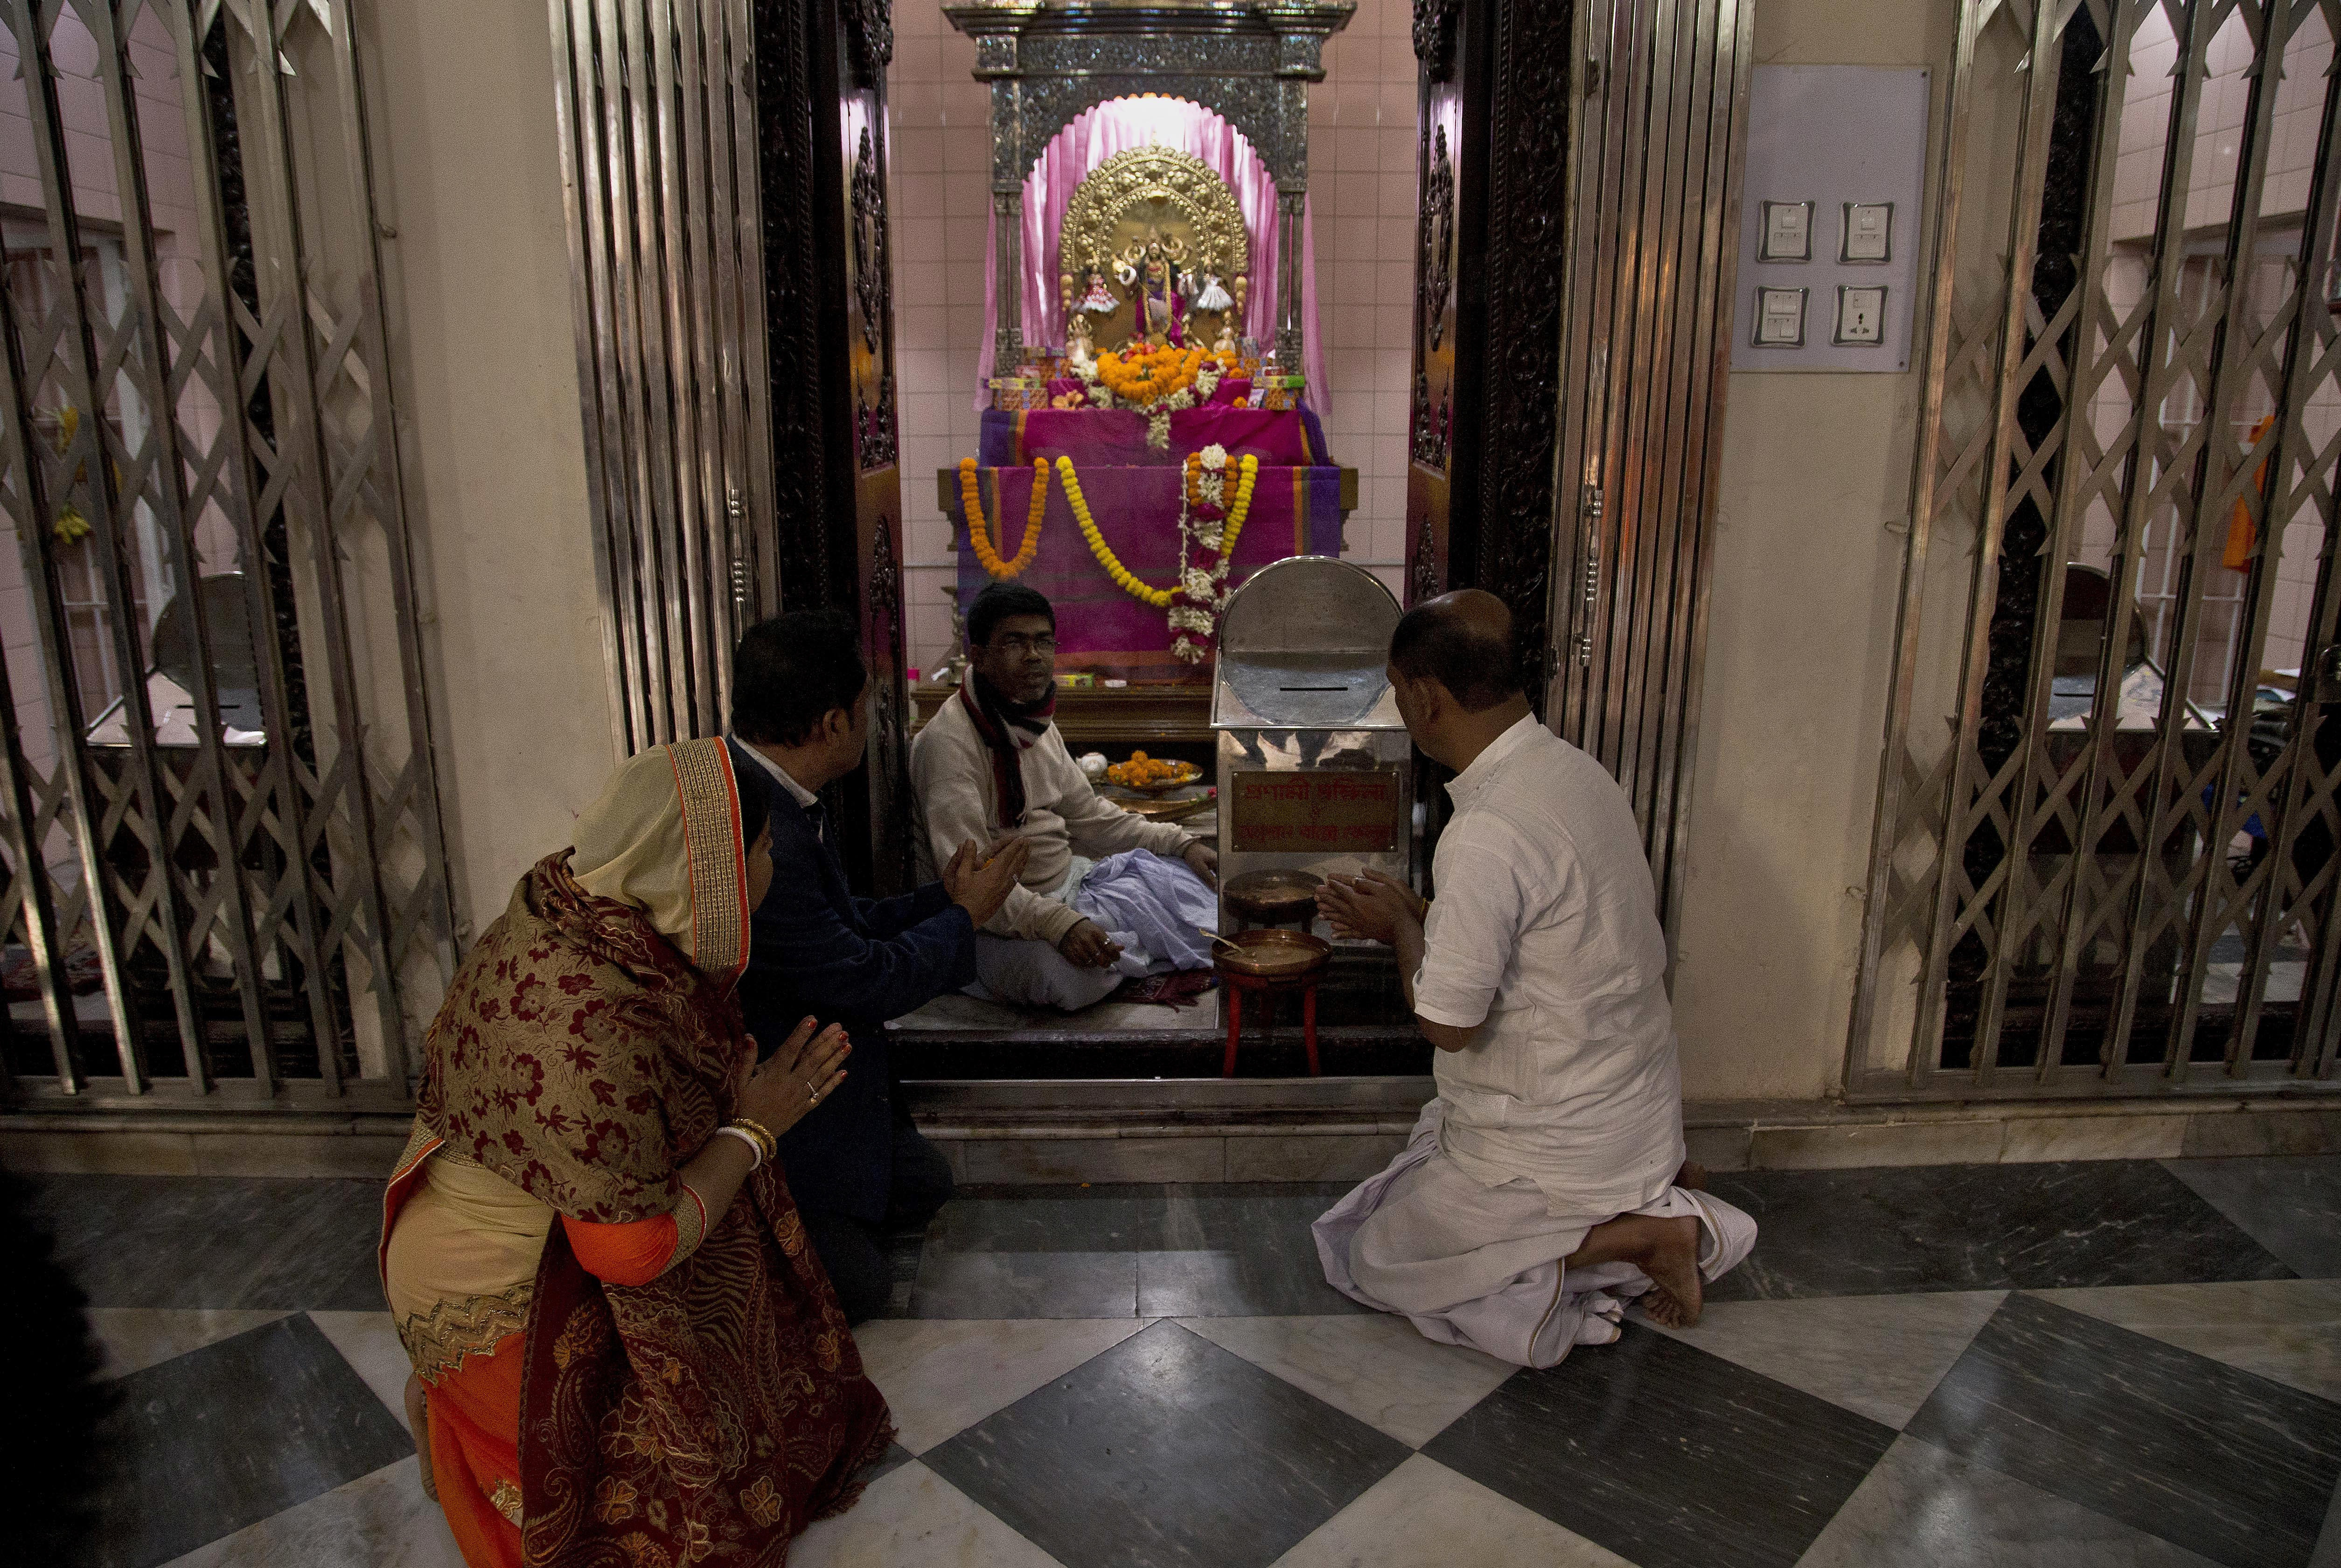 Hindu devotees pray at the Dhakeshwari Temple in Dhaka, Bangladesh, Jan. 1, 2019. Religious minorities in the Muslim-majority nation say Prime Minister Sheikh Hasina has safeguarded their rights.